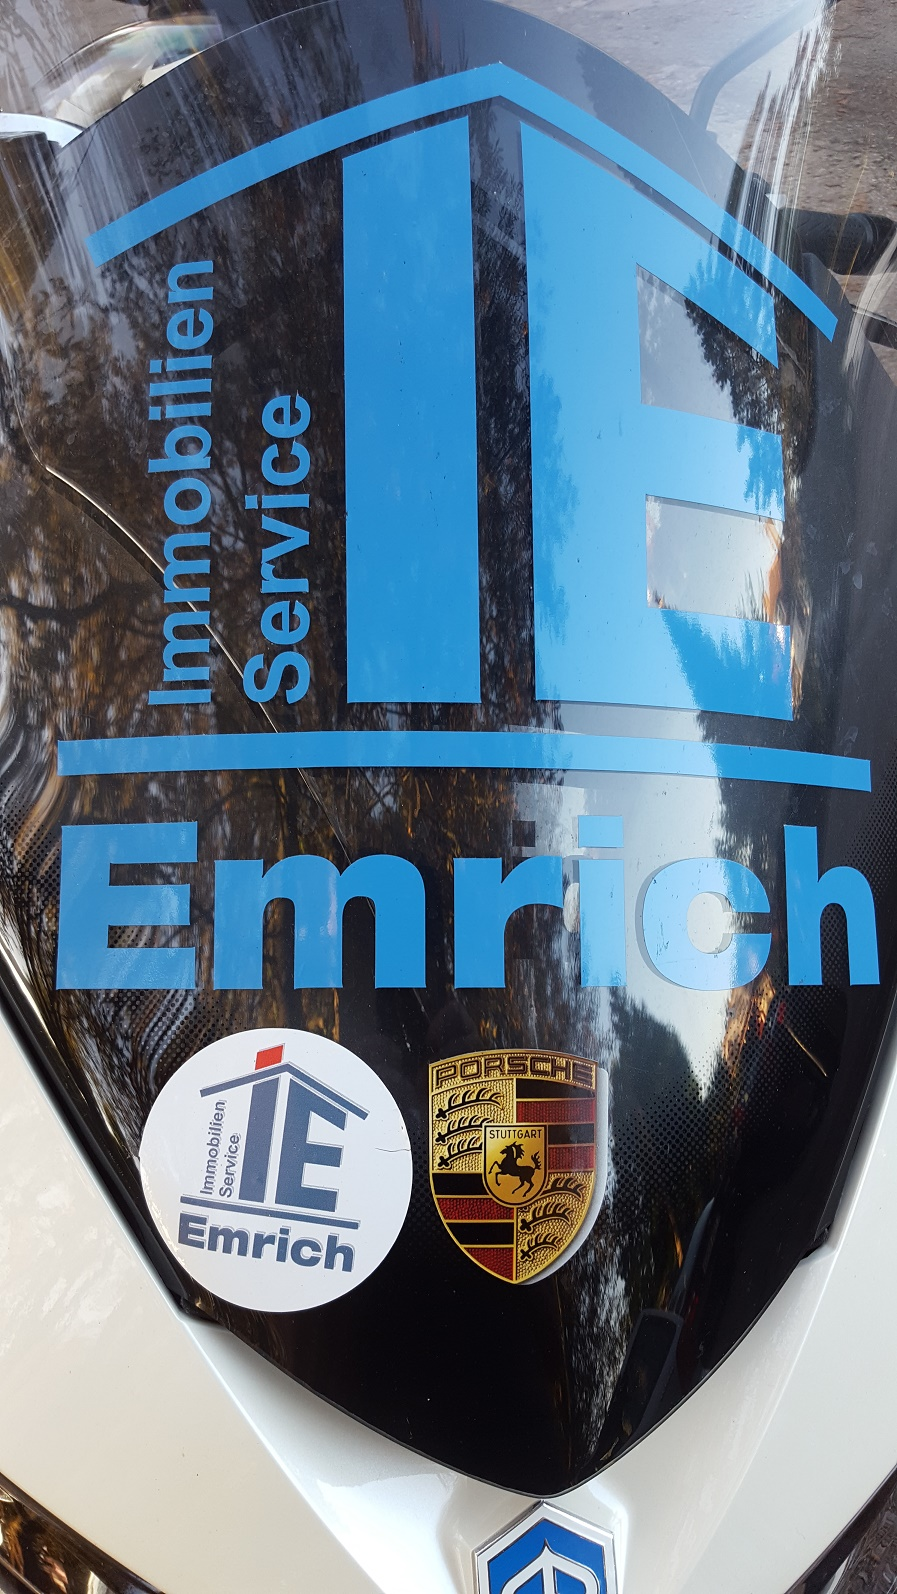 Immo-Emrich